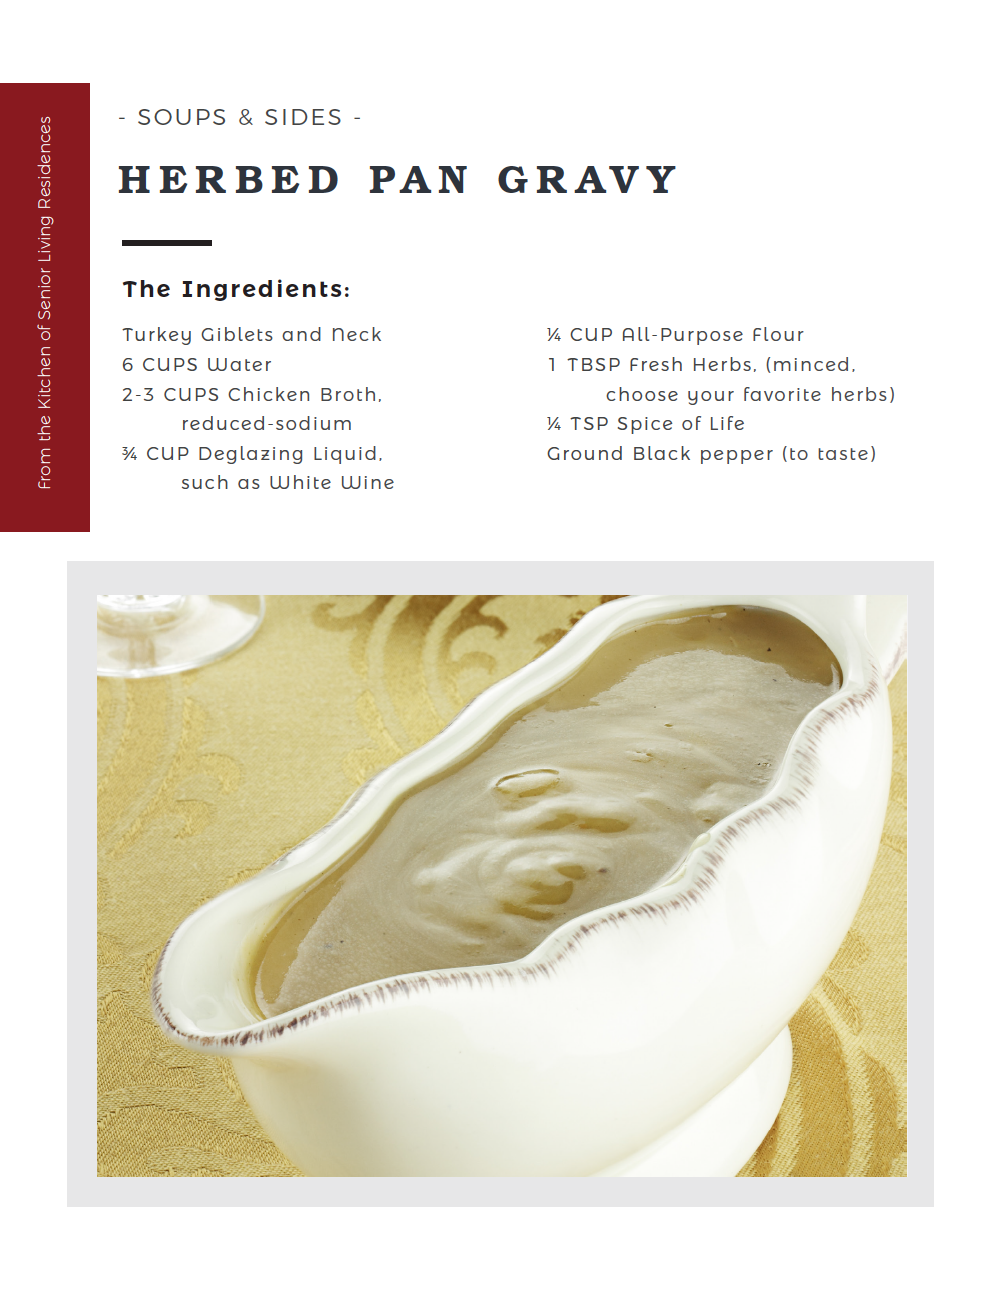 Herbed Pan Gravy recipe card